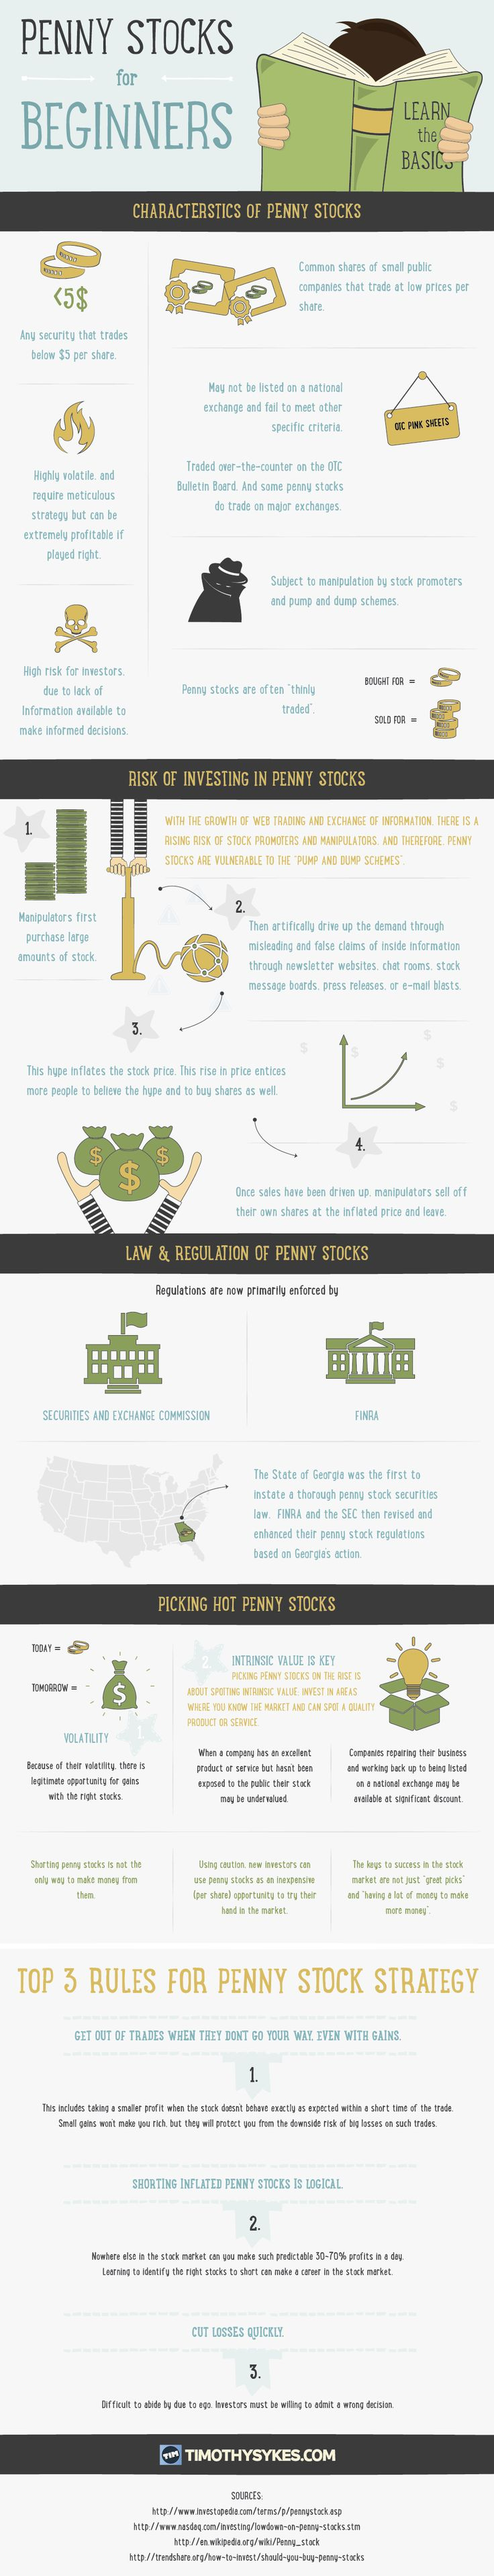 This infographic provides a background on penny stocks and the risks and opportunities involved.